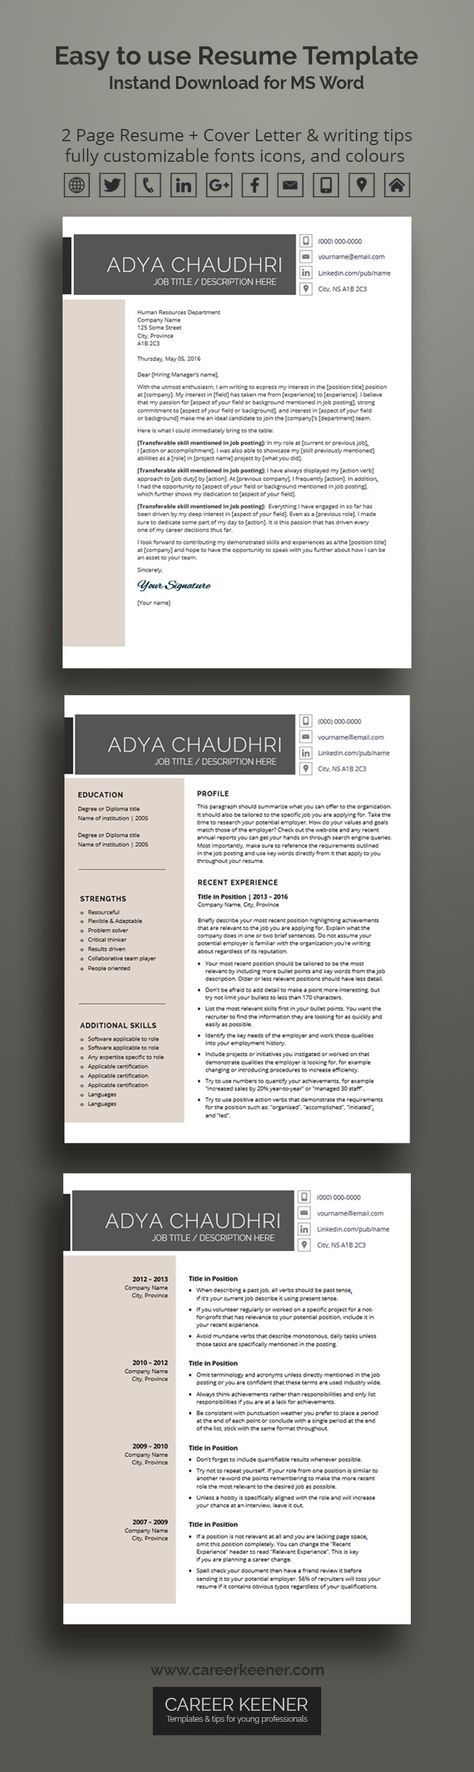 Chronological Resume Samples%0A Creative resume template for word with cover letter and references    page  resume  downloadable  printable  professional  modern resume  cv